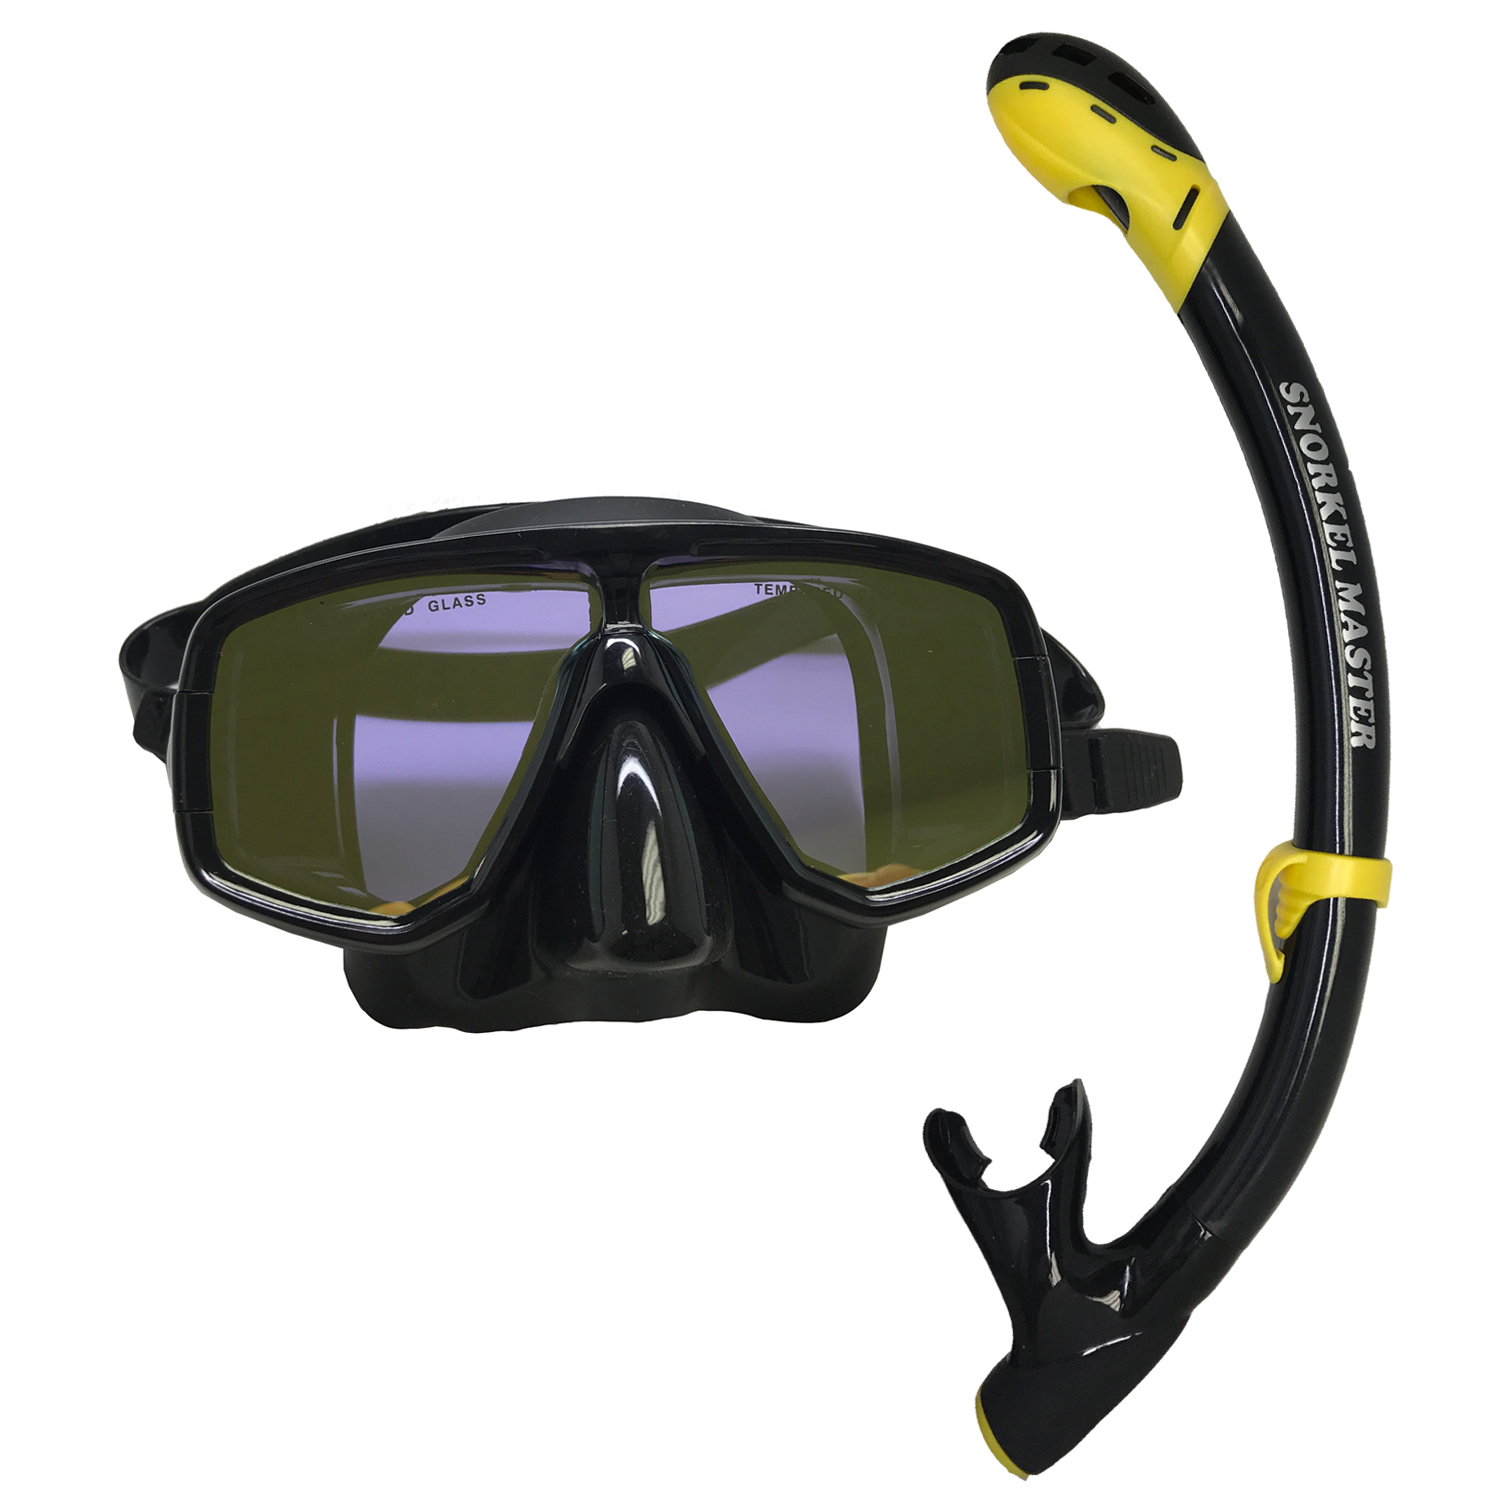 Scuba Choice Mask With Yellpw Mirror Coated Lense + Black Yellow Snorkel Combo by Scuba Choice